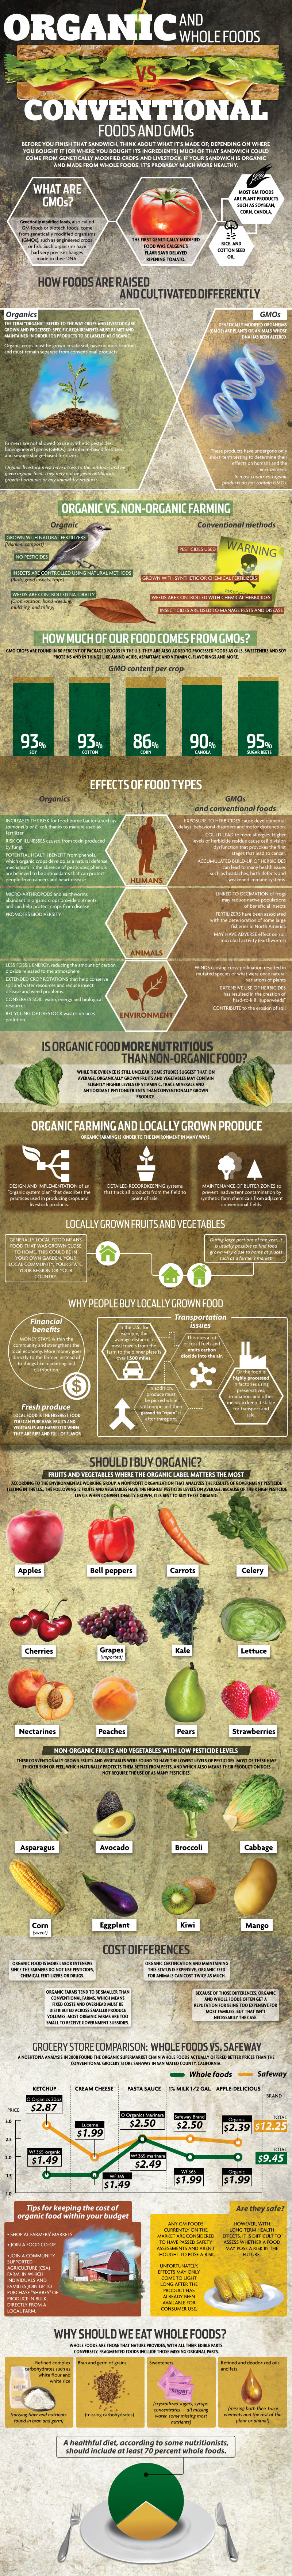 Learn More About Organic And GMO Food Infographic